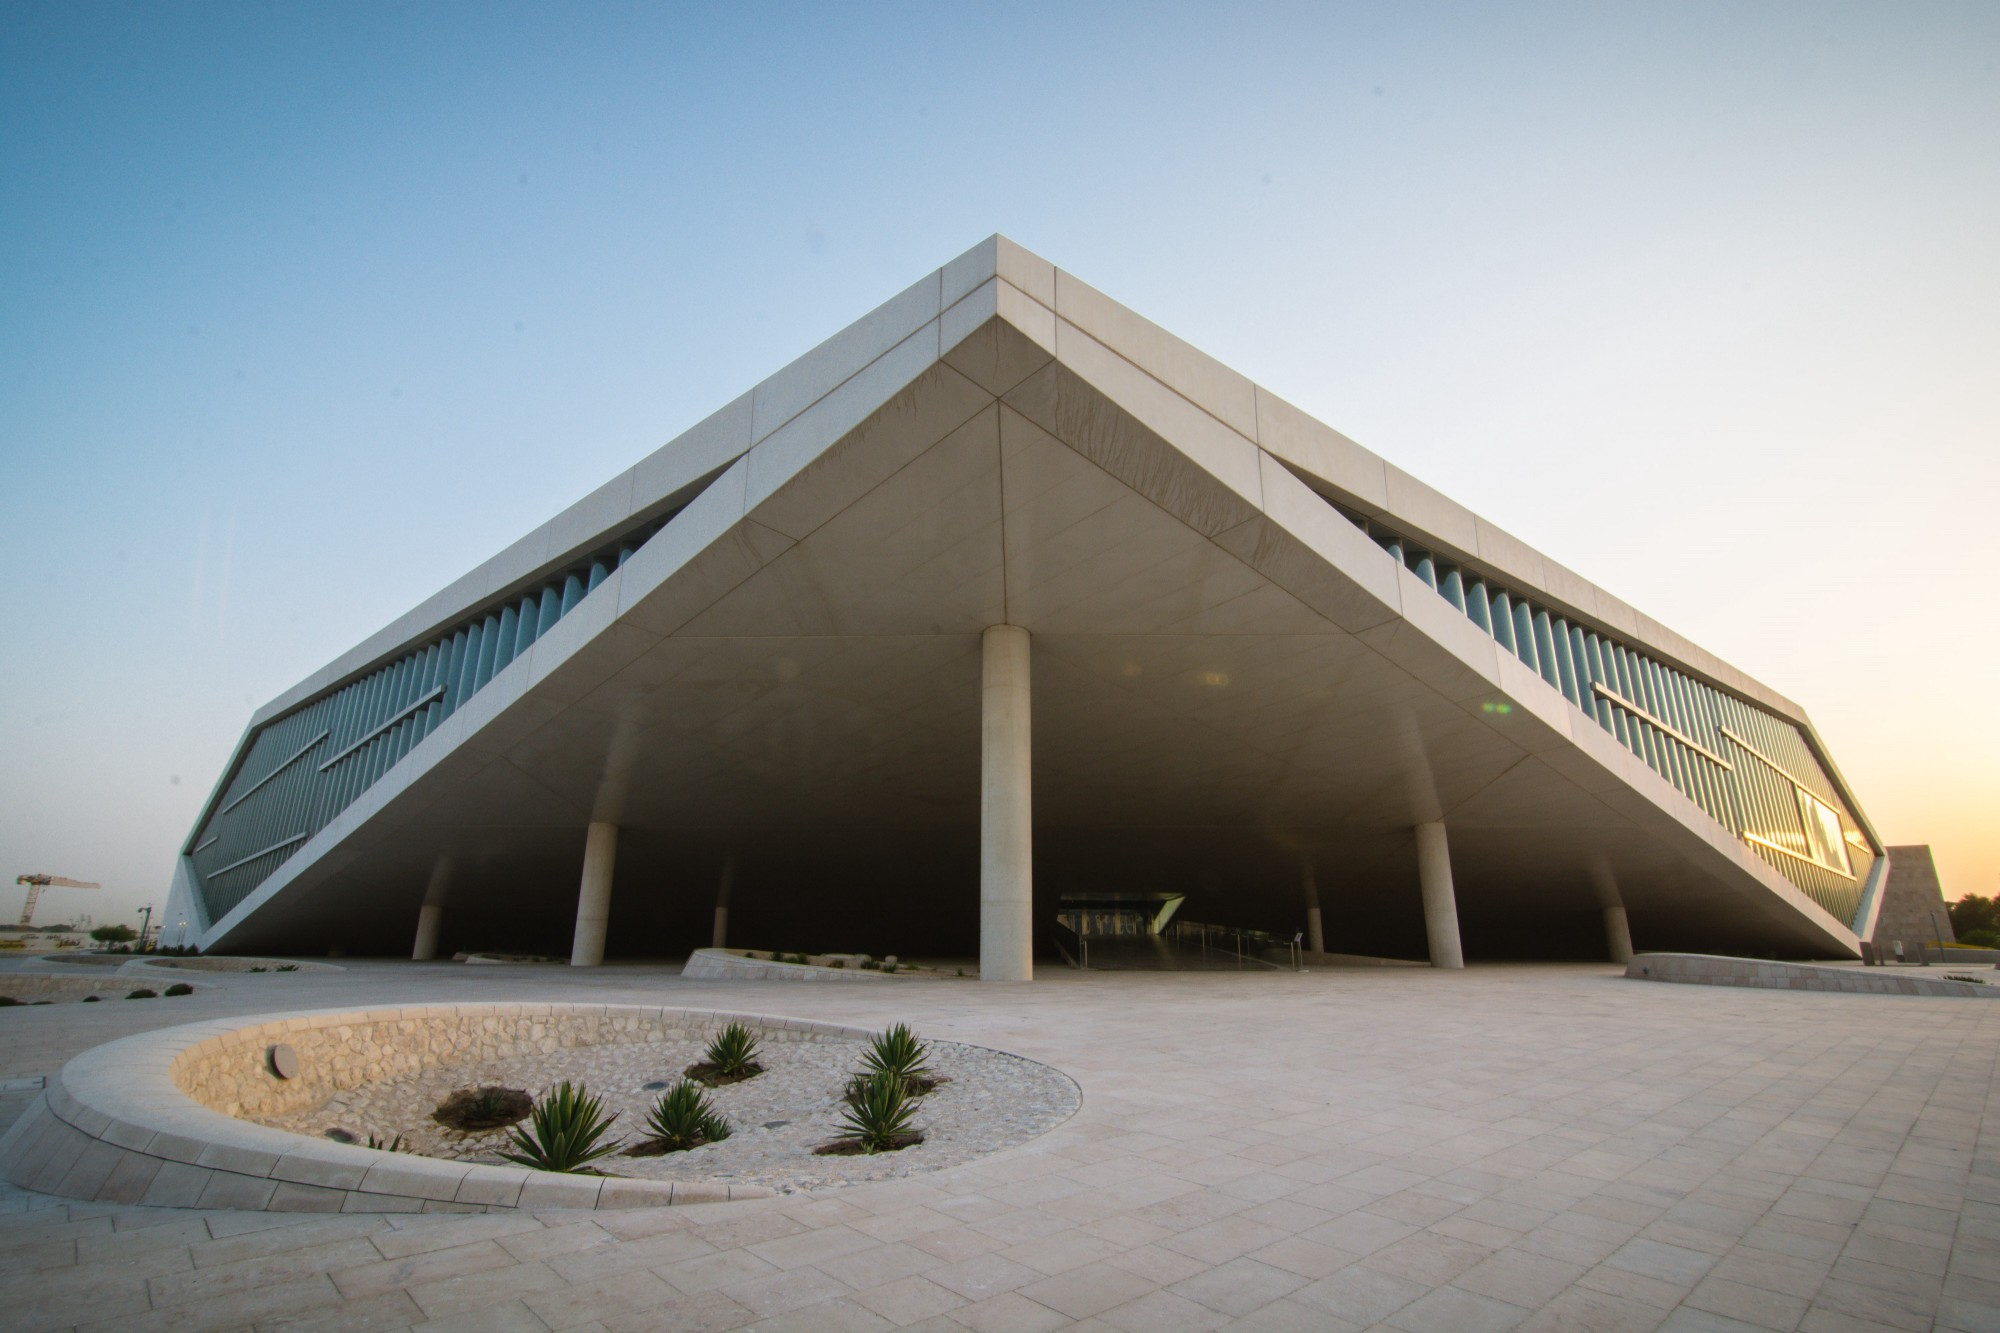 Award Winning Dutch Architect Rem Koolhaas Recently Explained His Approach  To Designing The Qatar National Library. The Architect Of Beijingu0027s Iconic  CCTV ...